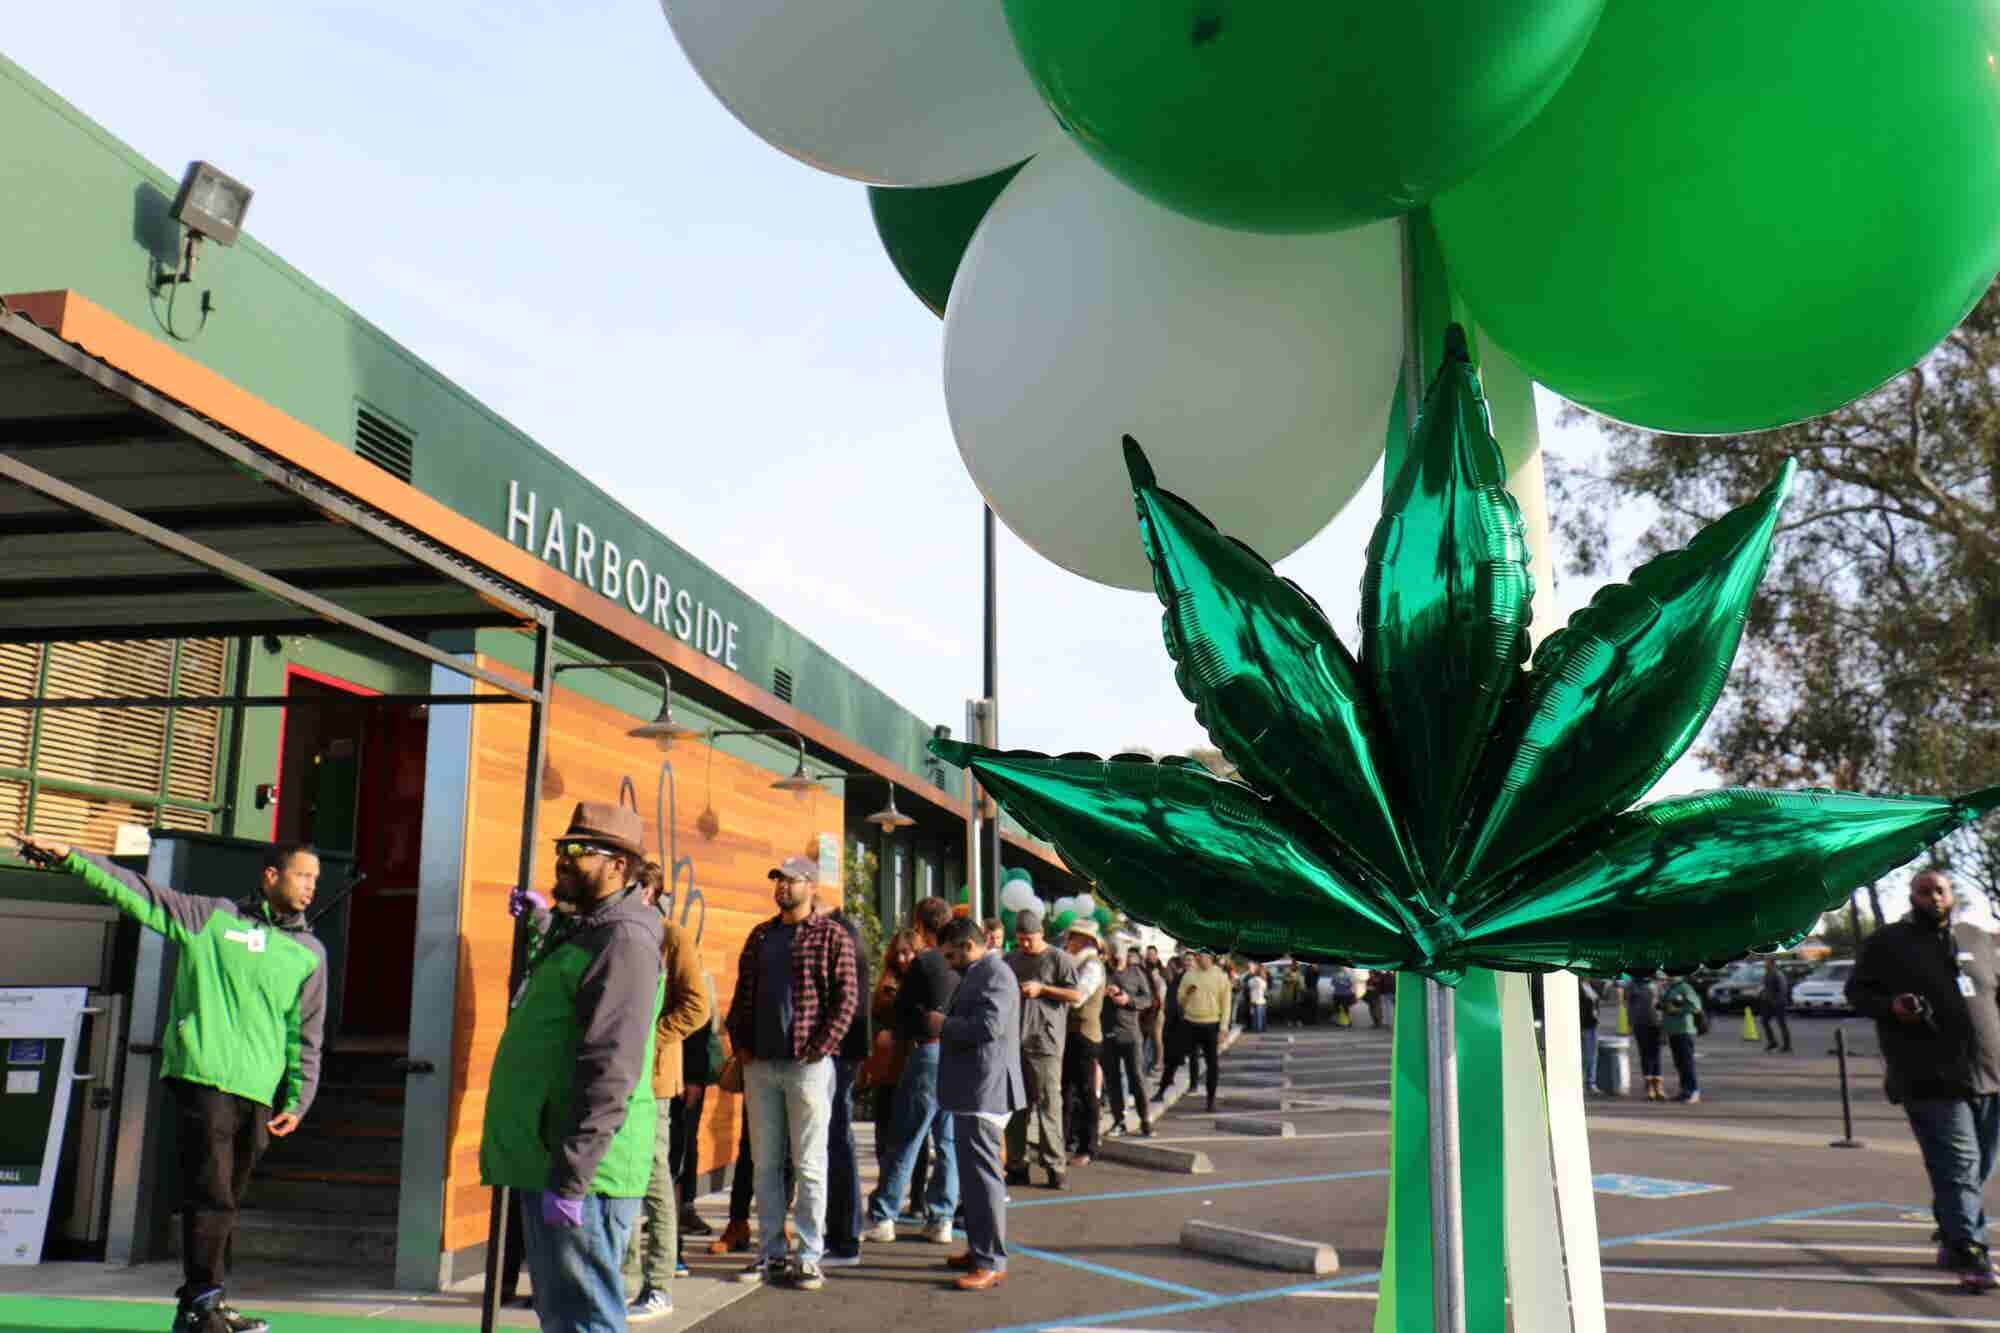 Analysis: Cannabis Shops Linked to Lower Crime, Increased Property Values